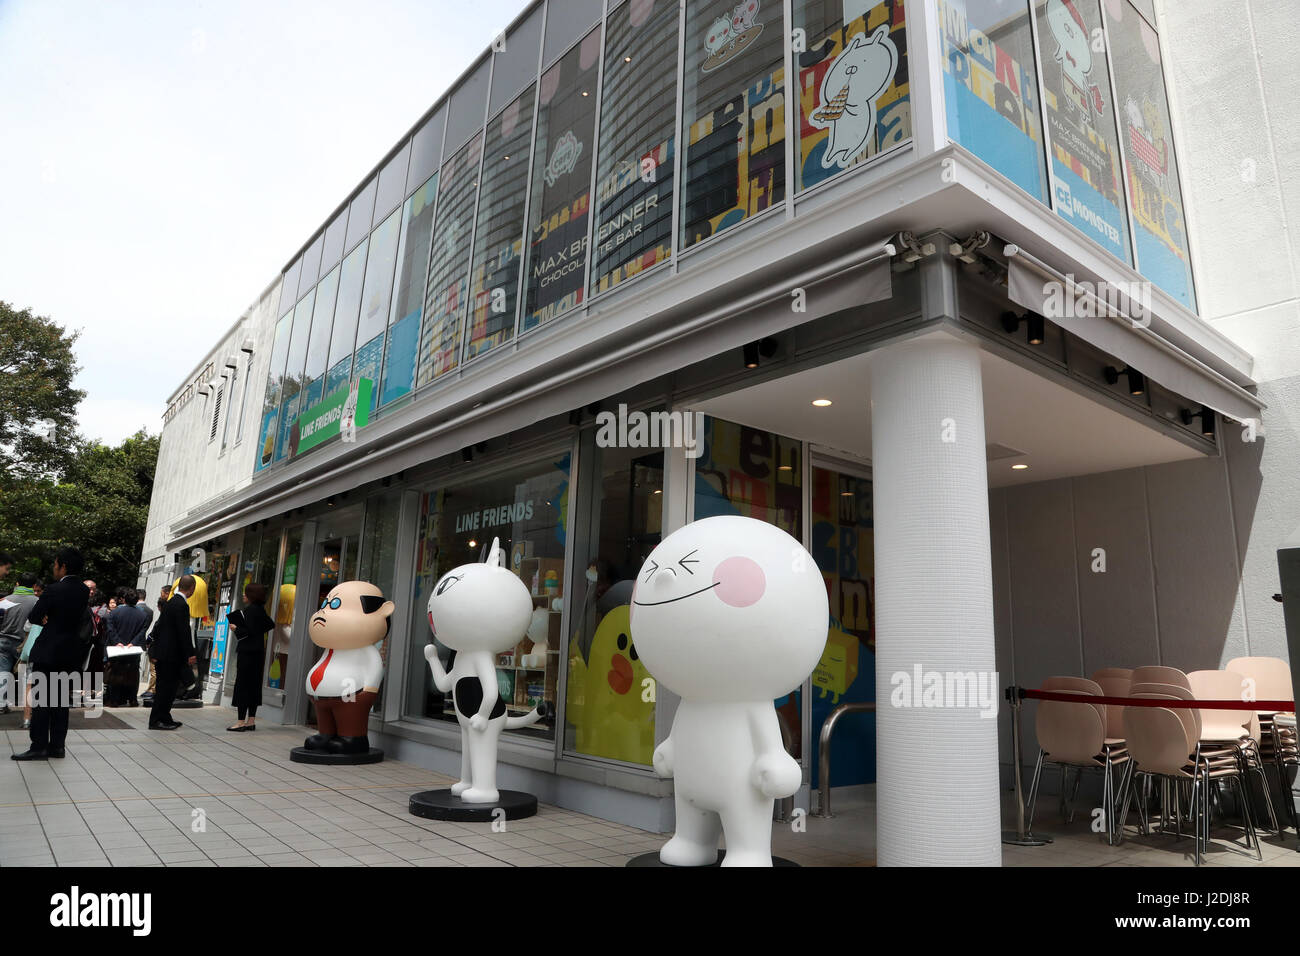 tokyo, japan. 27th apr, 2017. a pop-up cafe and character goods